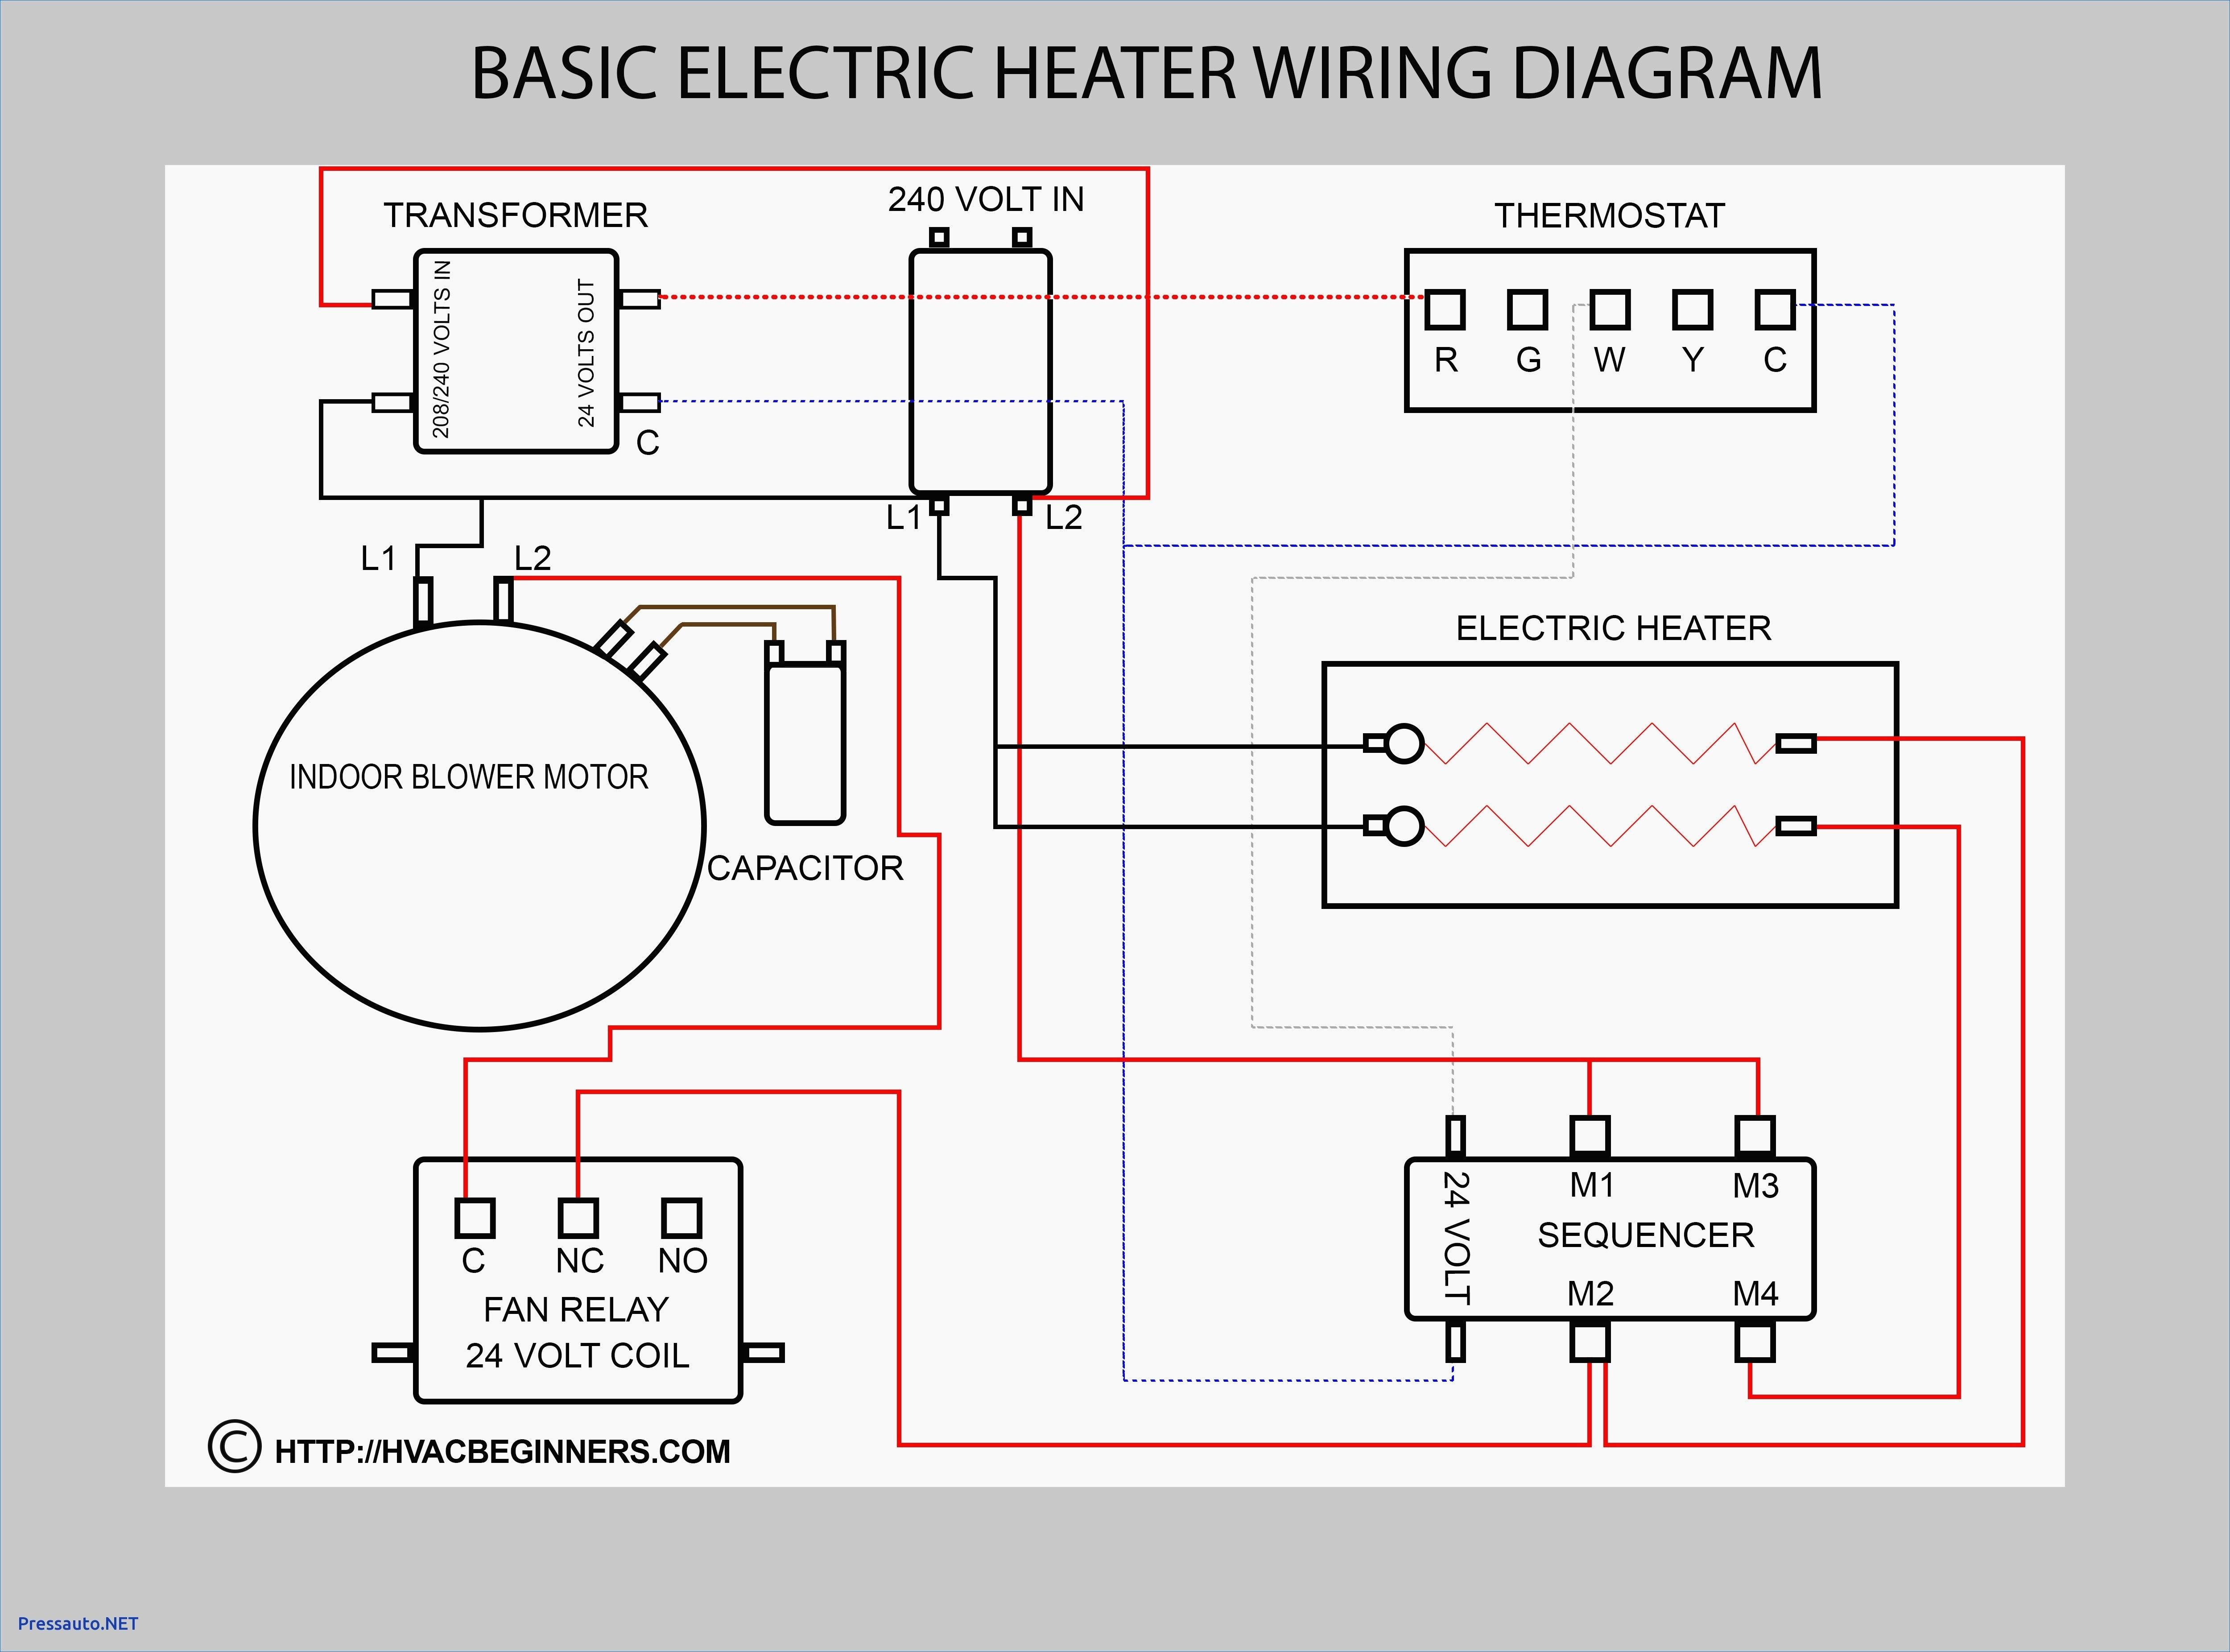 Luxury Wiring Diagram For A Y Plan Heating System Diagrams Digramssample Diagramimages Basic Electrical Wiring Thermostat Wiring Electrical Wiring Diagram